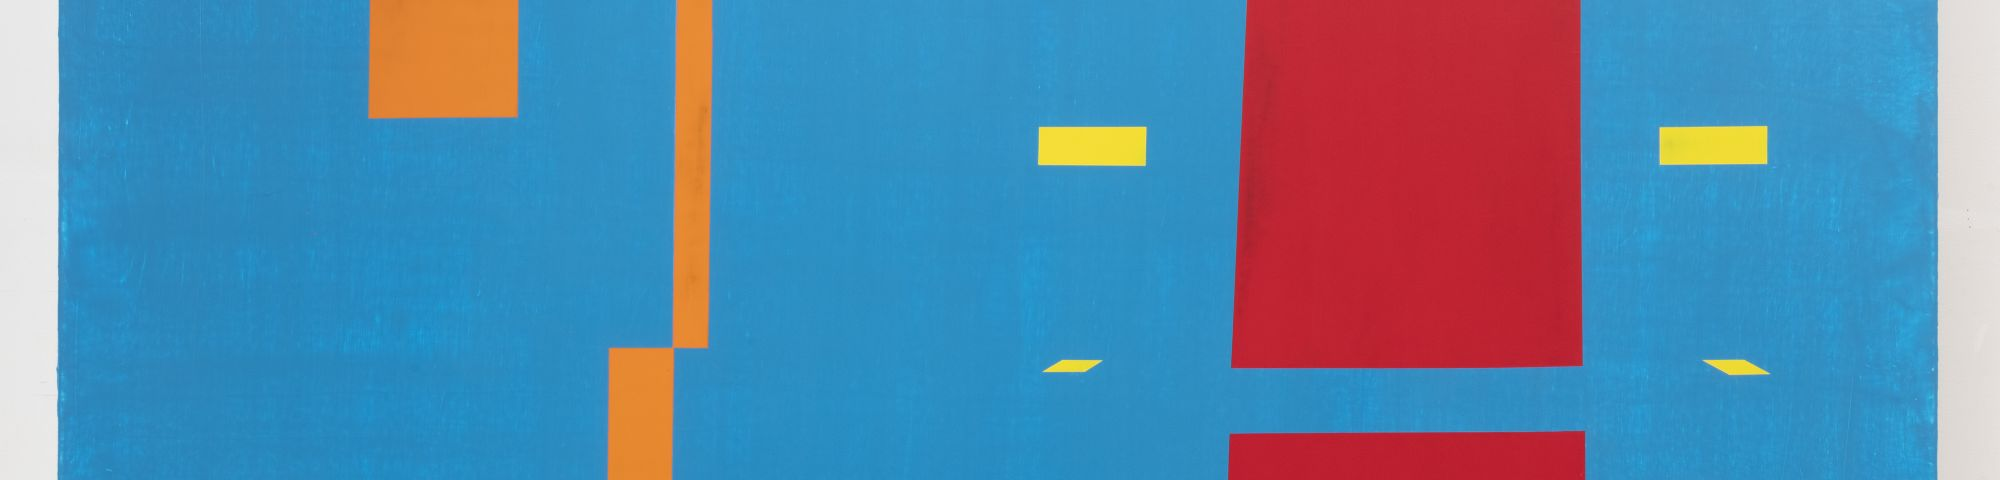 An abstract painting of blocks in red, orange and yellow against a blue background